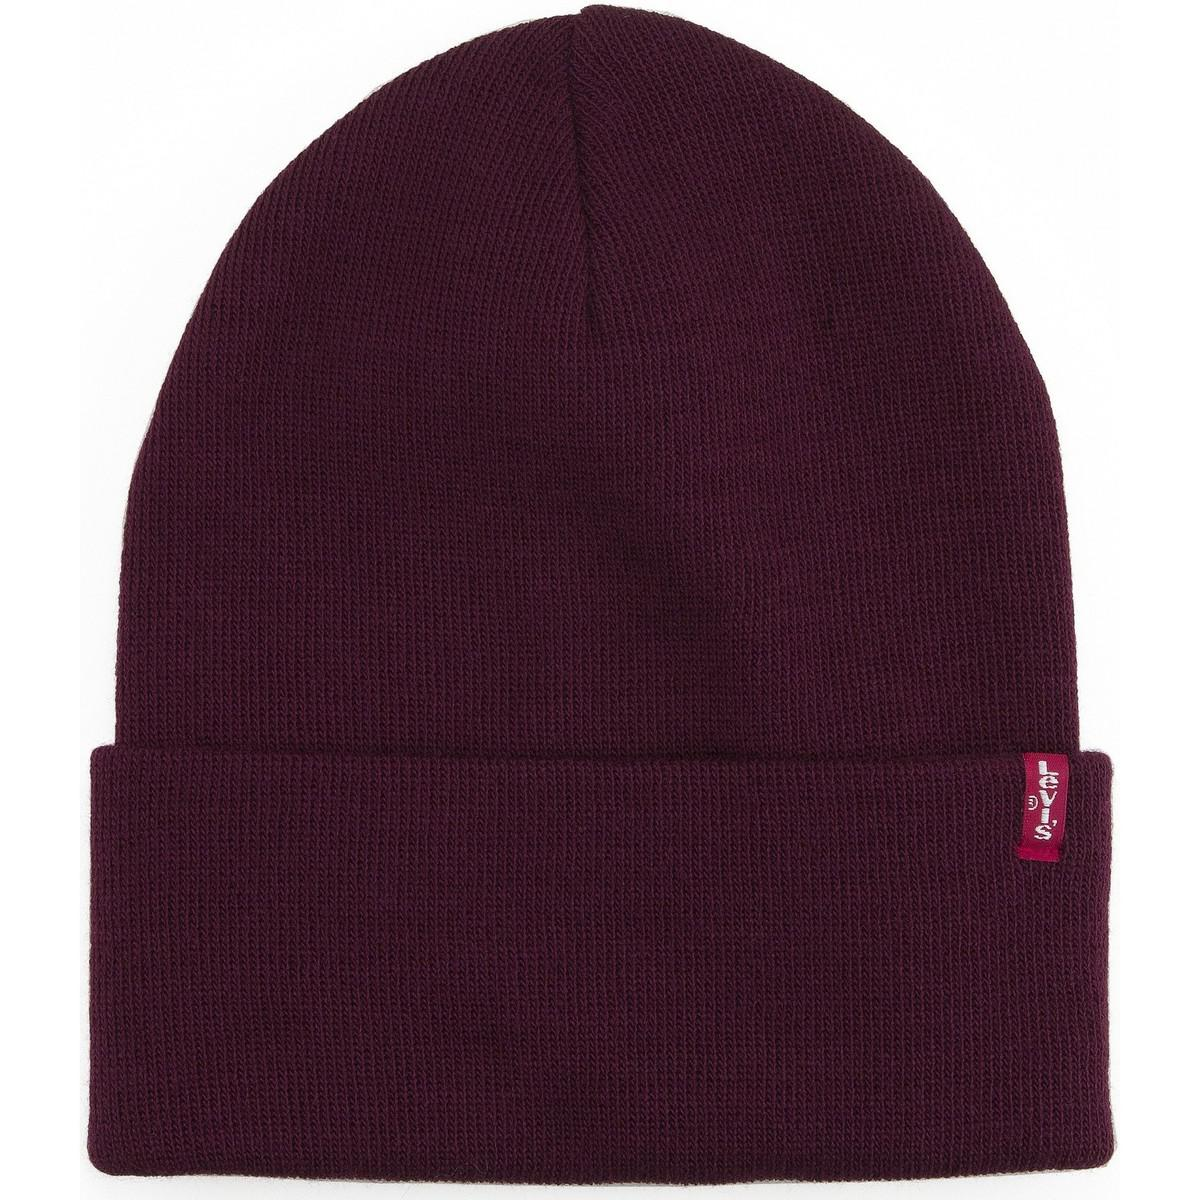 Levi S Levis Slouchy Red Tab Beanie - Dark Bordeaux Men s Beanie In ... 75ad5355c192